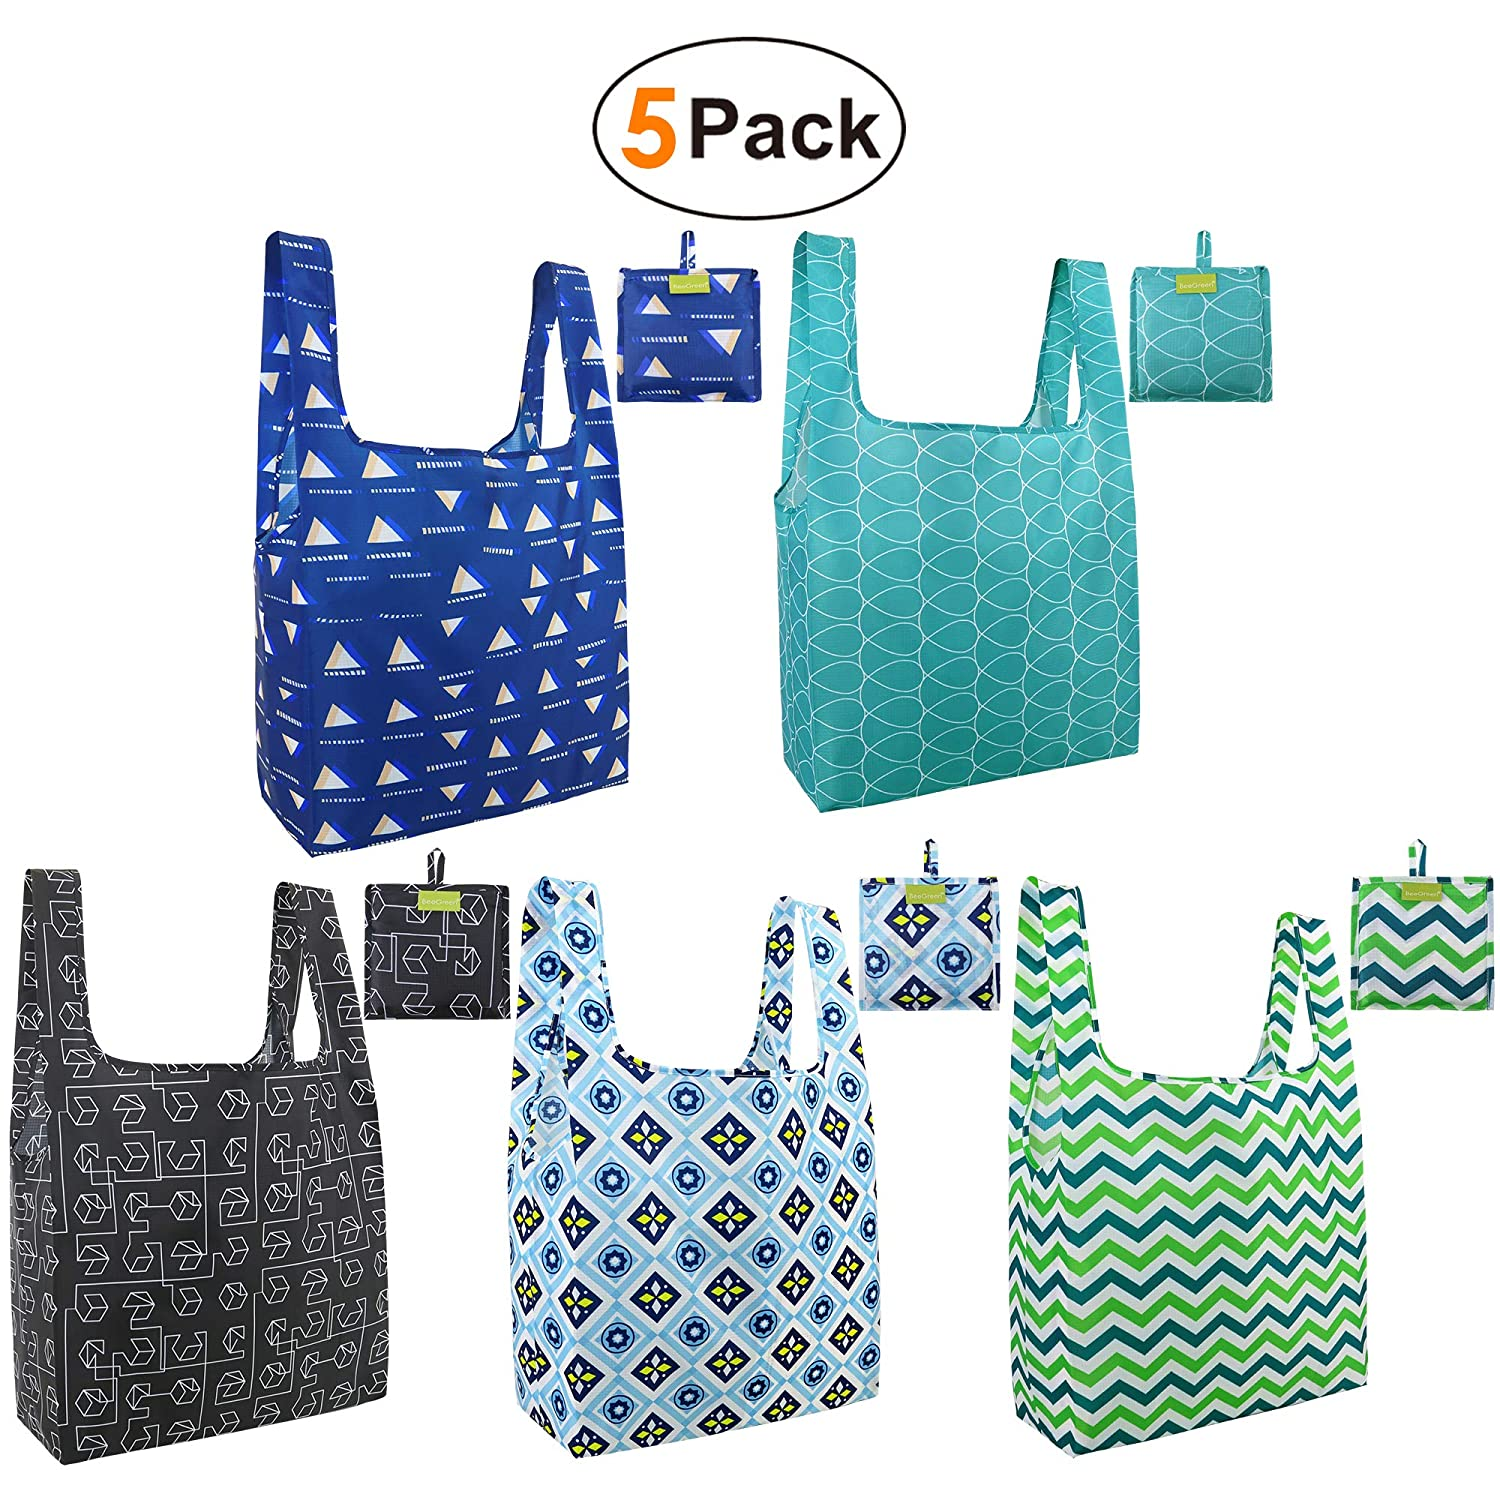 3b14cc56830b Grocery-Totes-Bags-Shopping-Reusable-Bags 5 Pack with Pouch Grocery Bags  Cloth Reusable Bags Ripstop Washable Foldable Bag Large Durable Lightweight  green ...